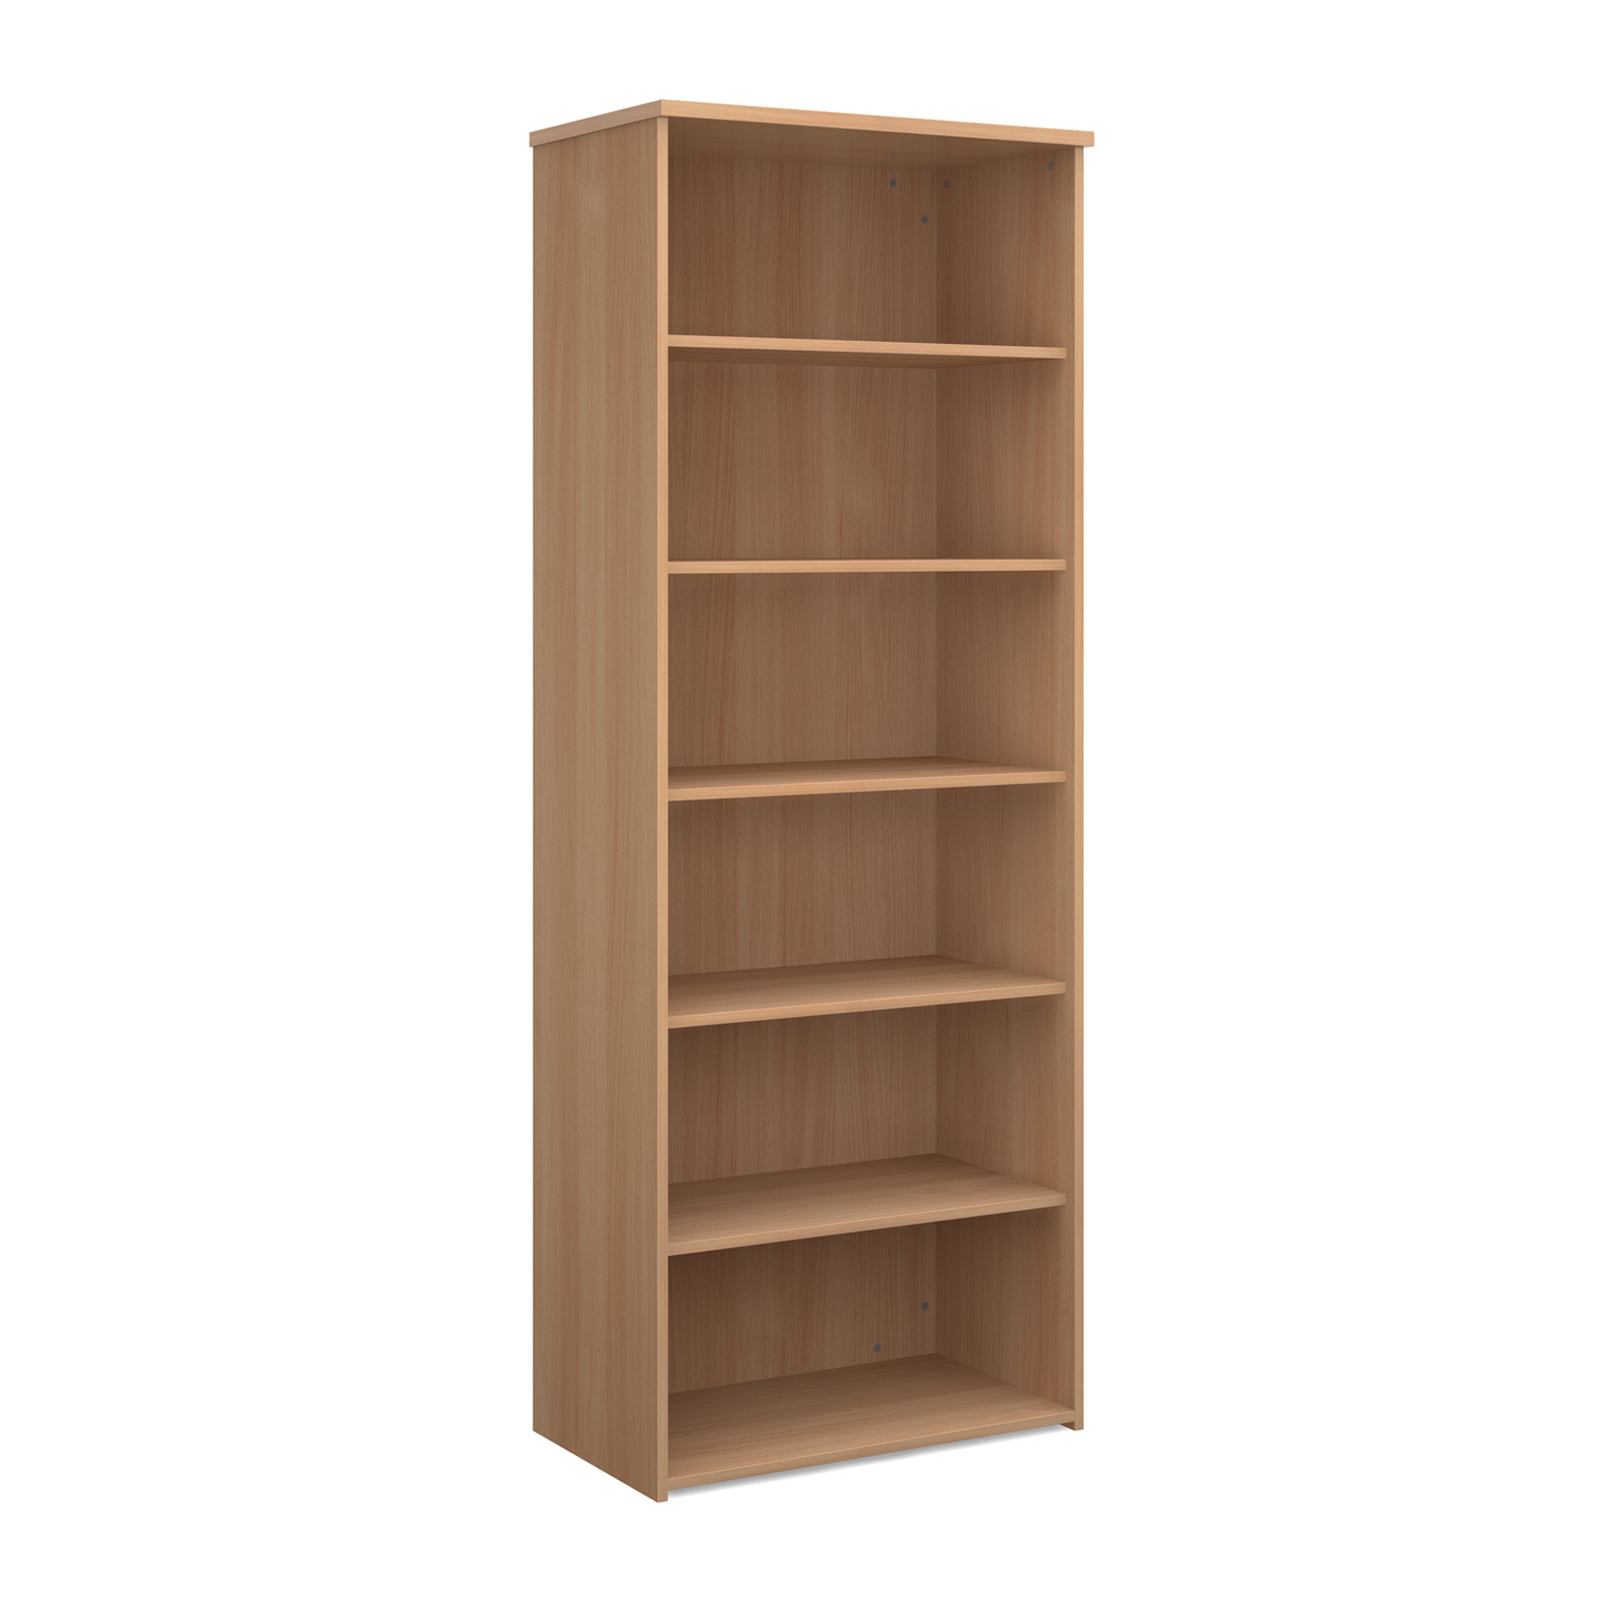 Universal bookcase 2140mm high with 5 shelves - beech